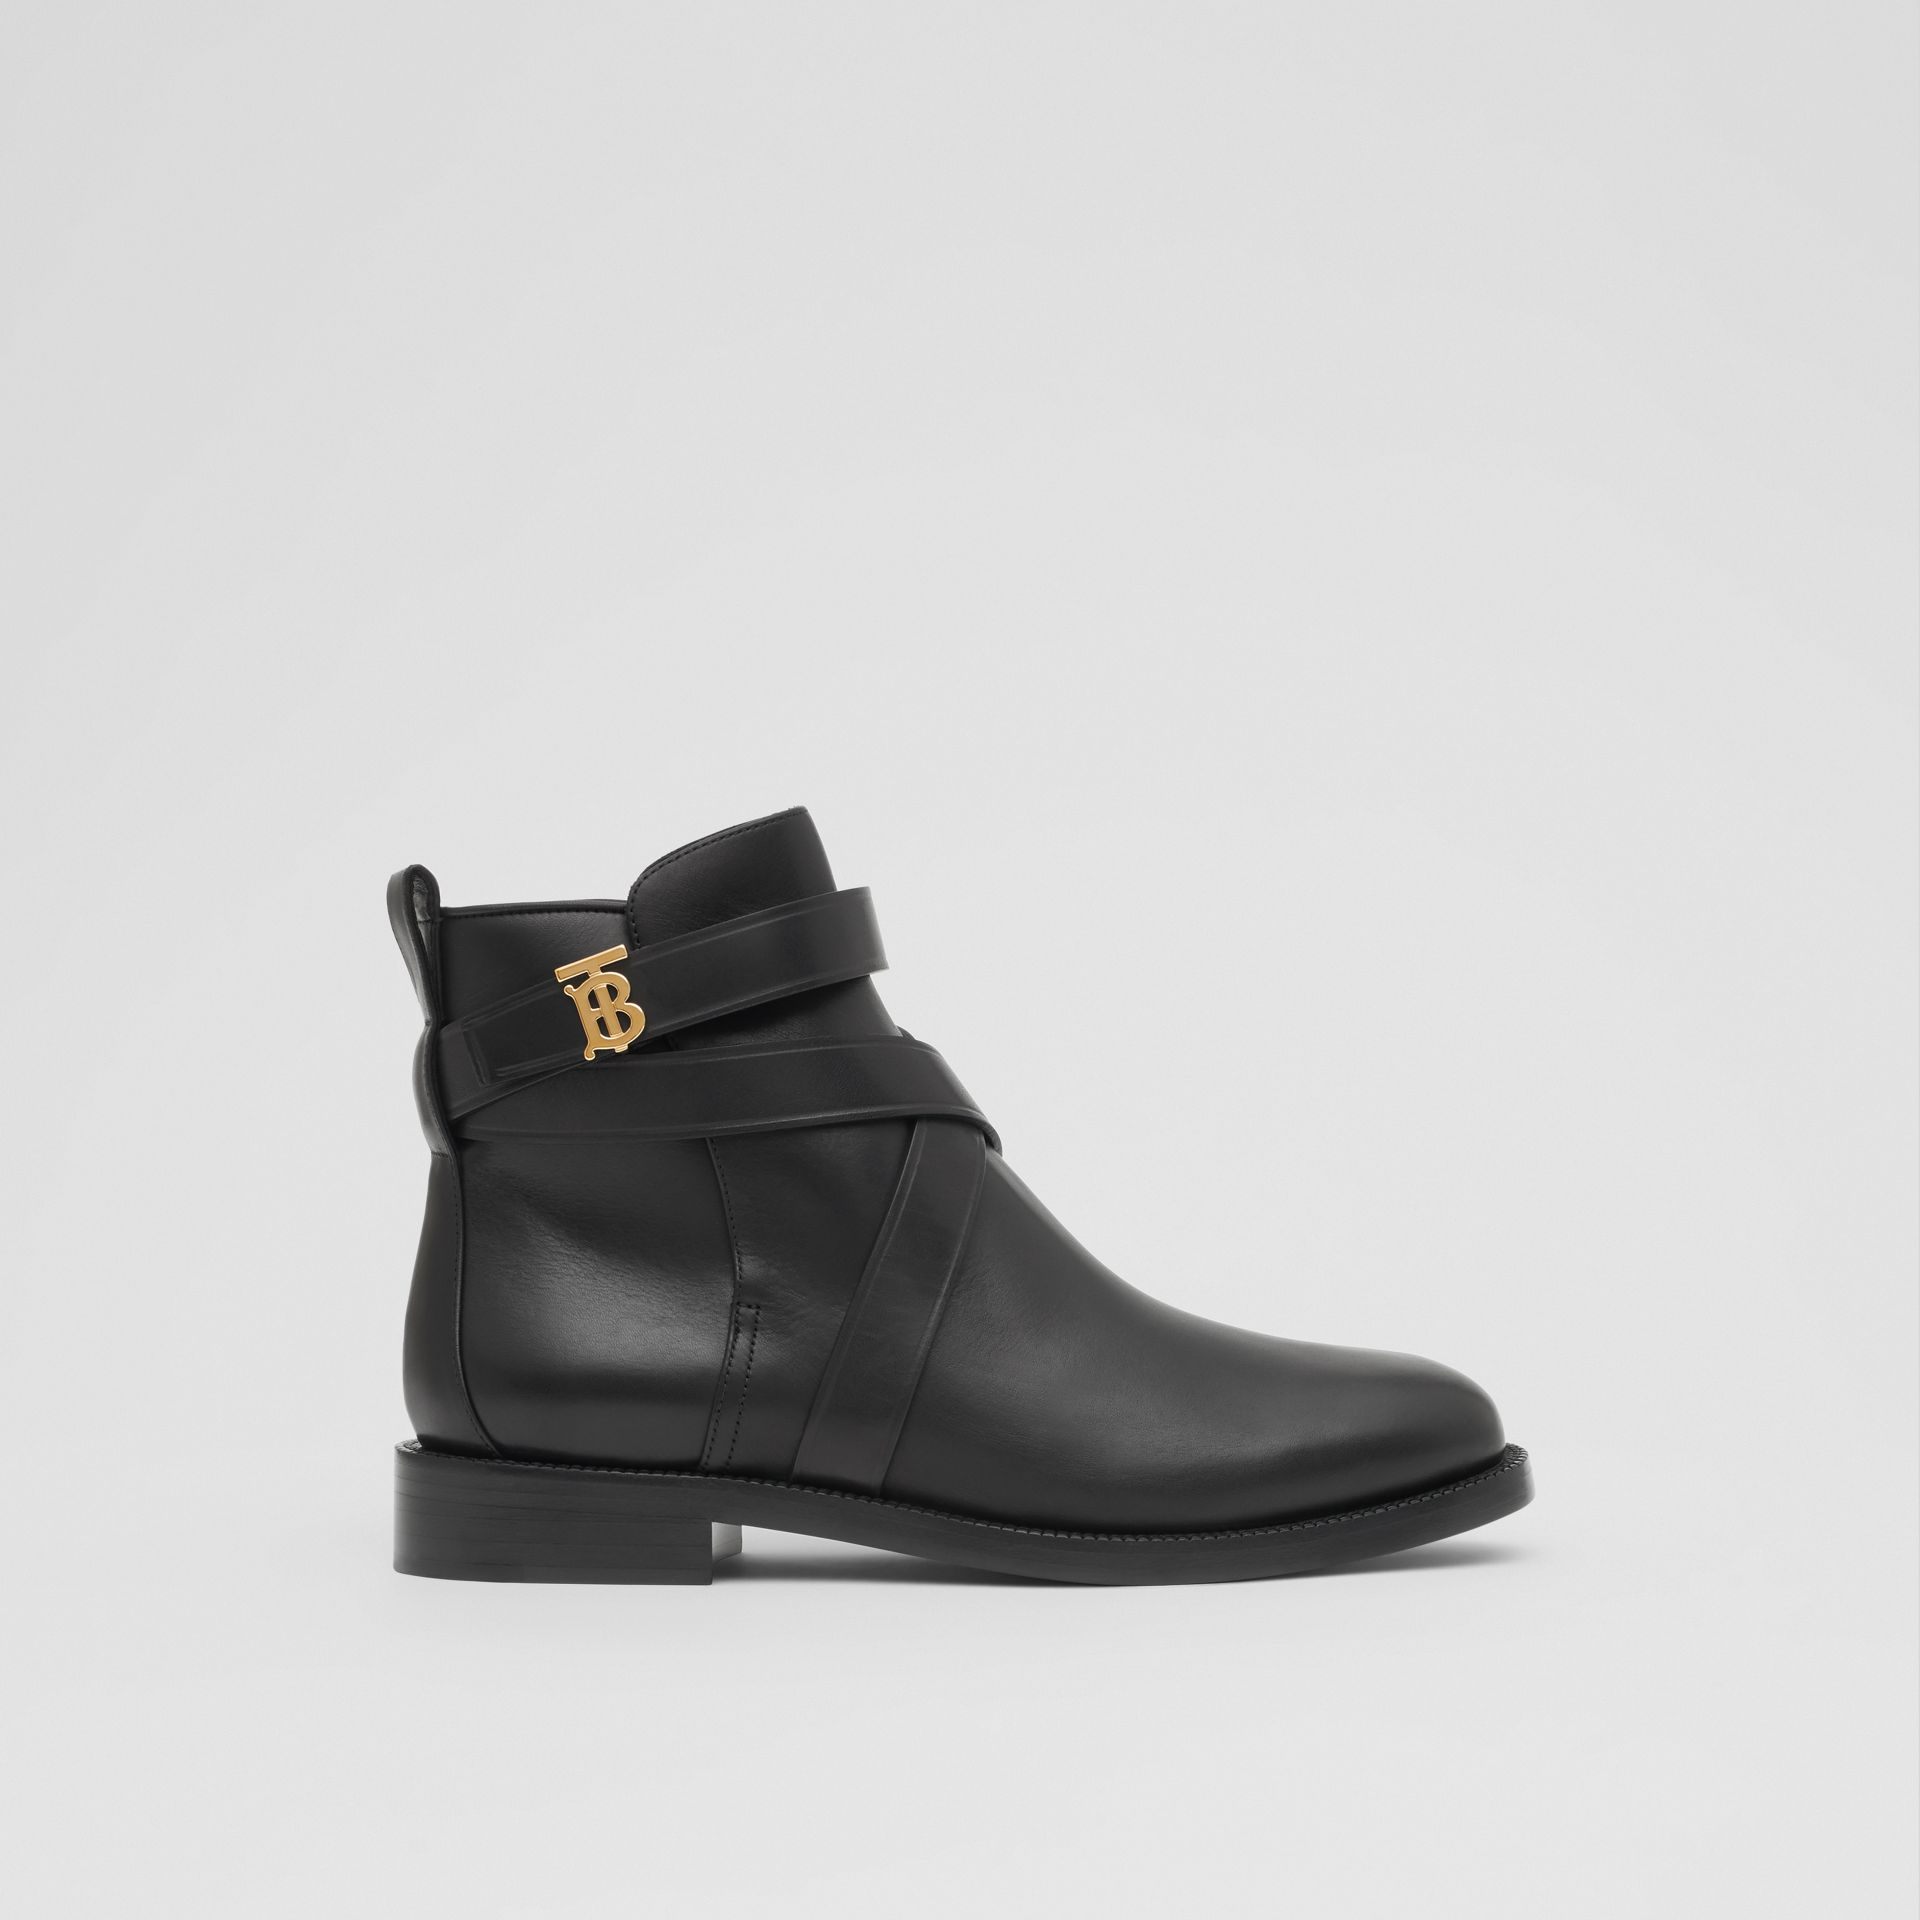 Monogram Motif Leather Ankle Boots in Black - Women | Burberry - gallery image 4